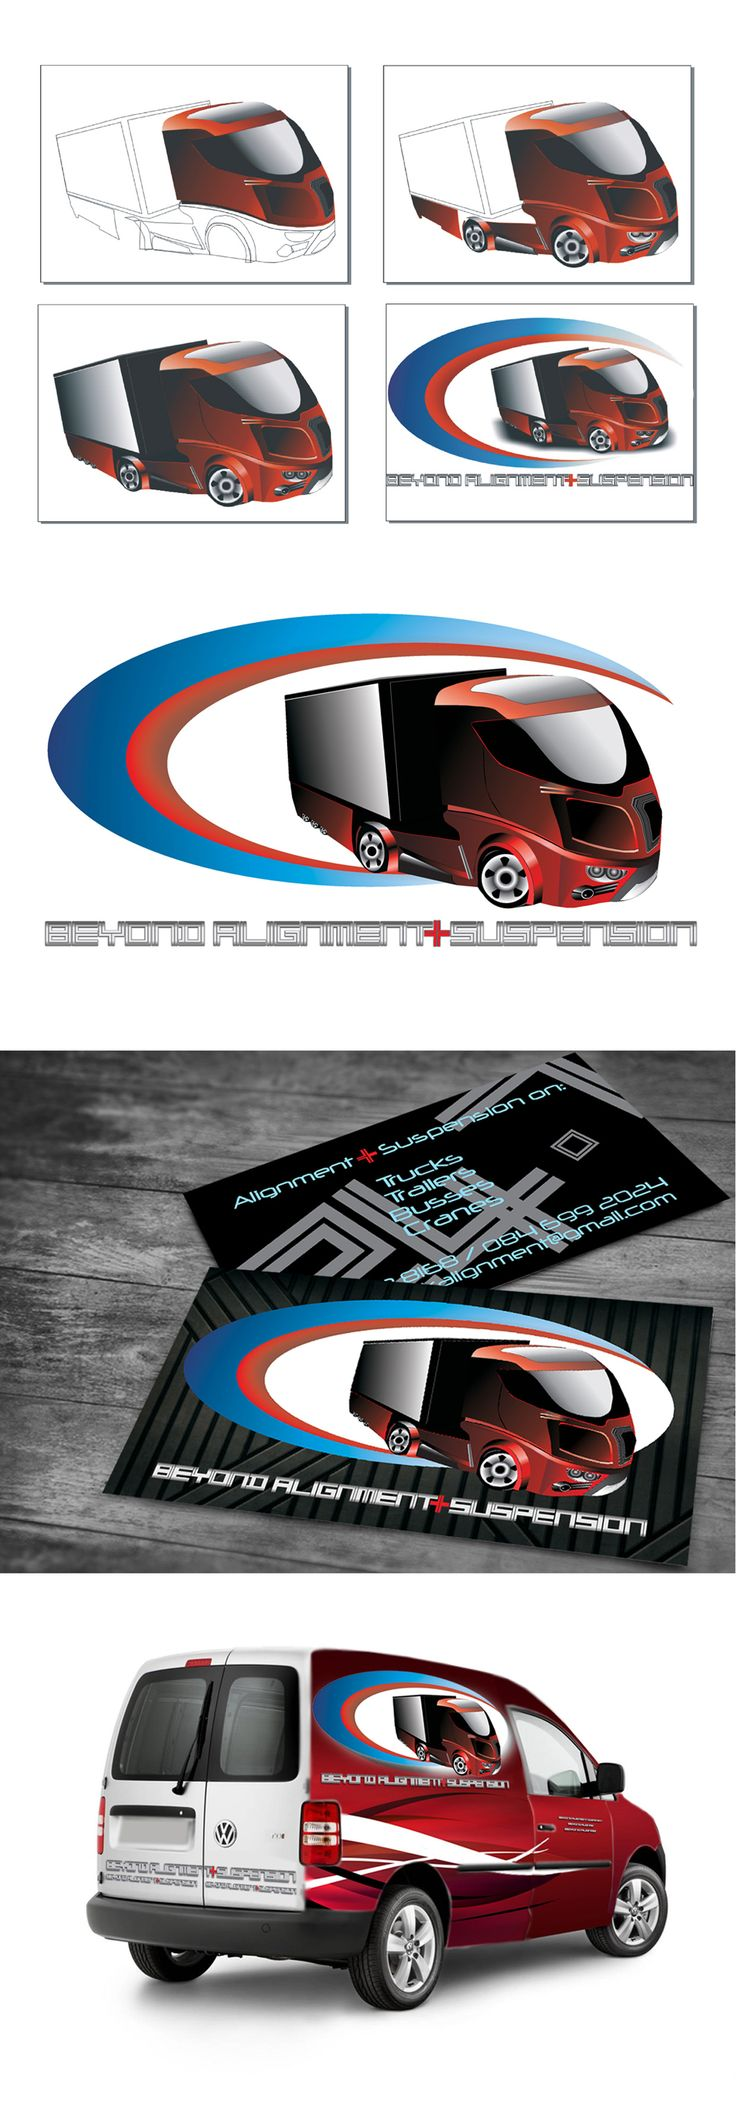 Logo Design,Business Card Design and Printing. Vehicle branding design and wrapping. #logo #design #branding #printing #vehicle# #wrapping # businesscard